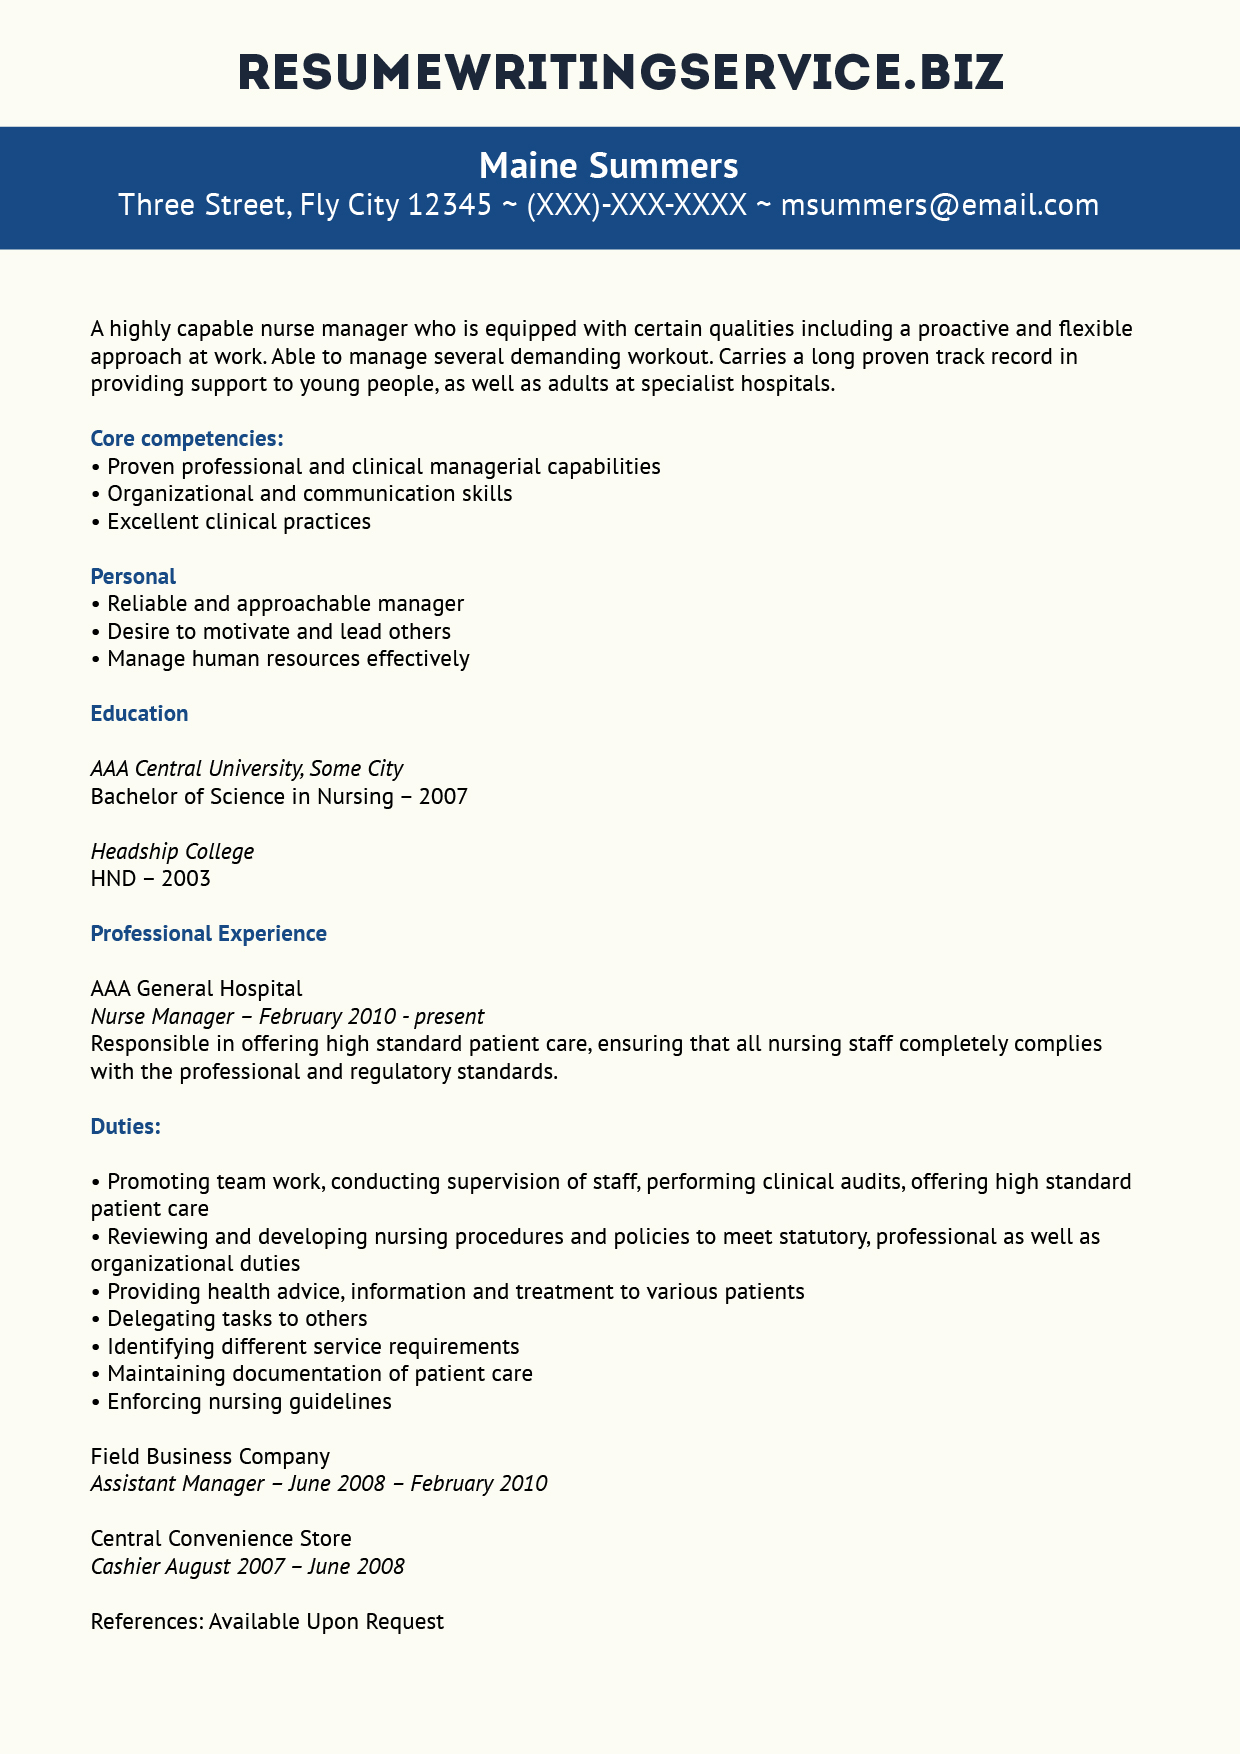 assistant nurse manager resumes